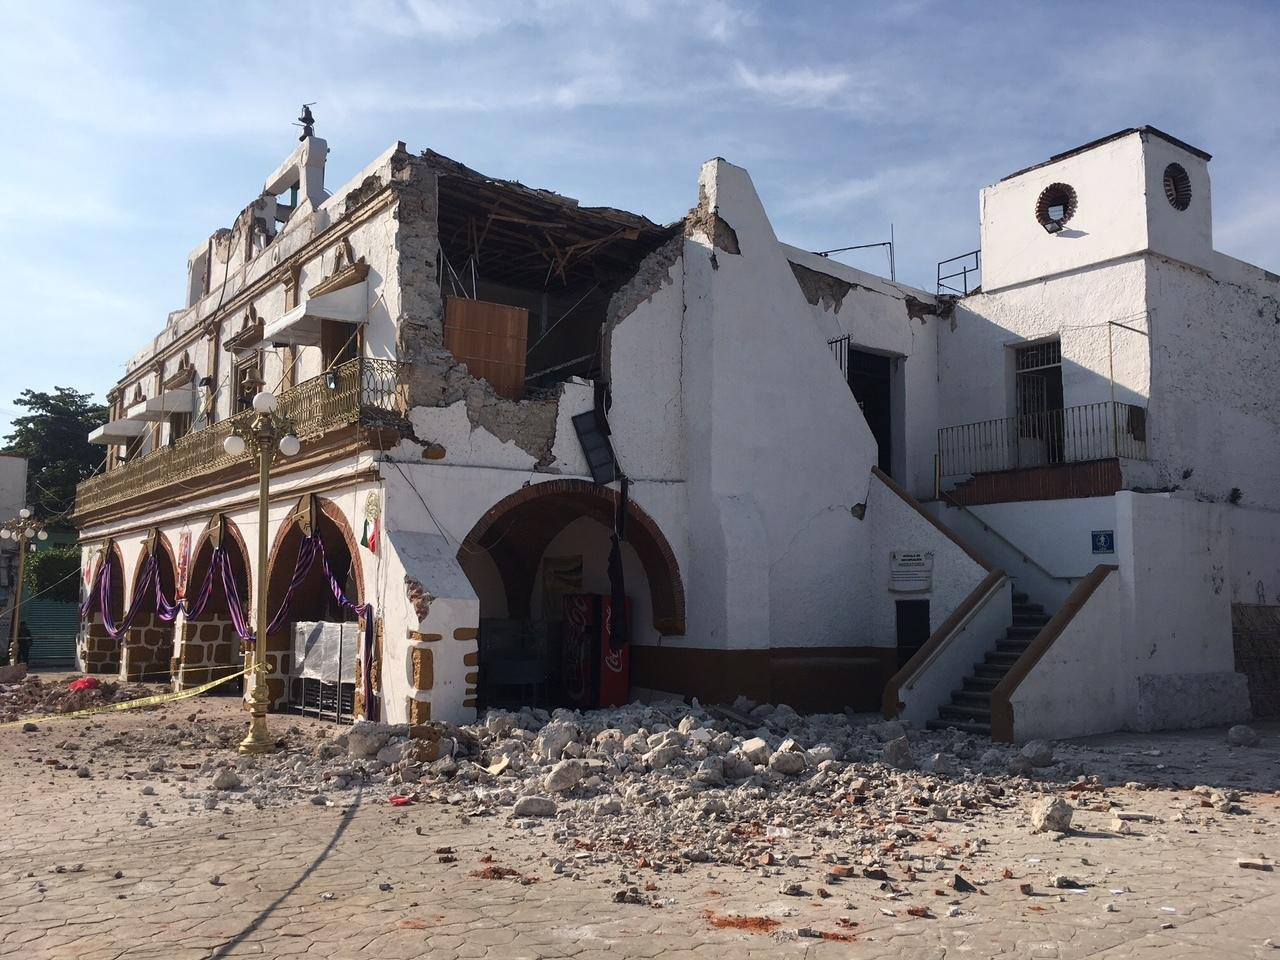 The Jojutla Municipal Palace stands heavily damaged after a 7.1 earthquake, in Jojutla, Morelos state, Mexico, Tuesday, Sept. 19 2017. The earthquake stunned central Mexico, killing at least 120 people as buildings collapsed in plumes of dust. (AP Photo/Carlos Rodriguez)